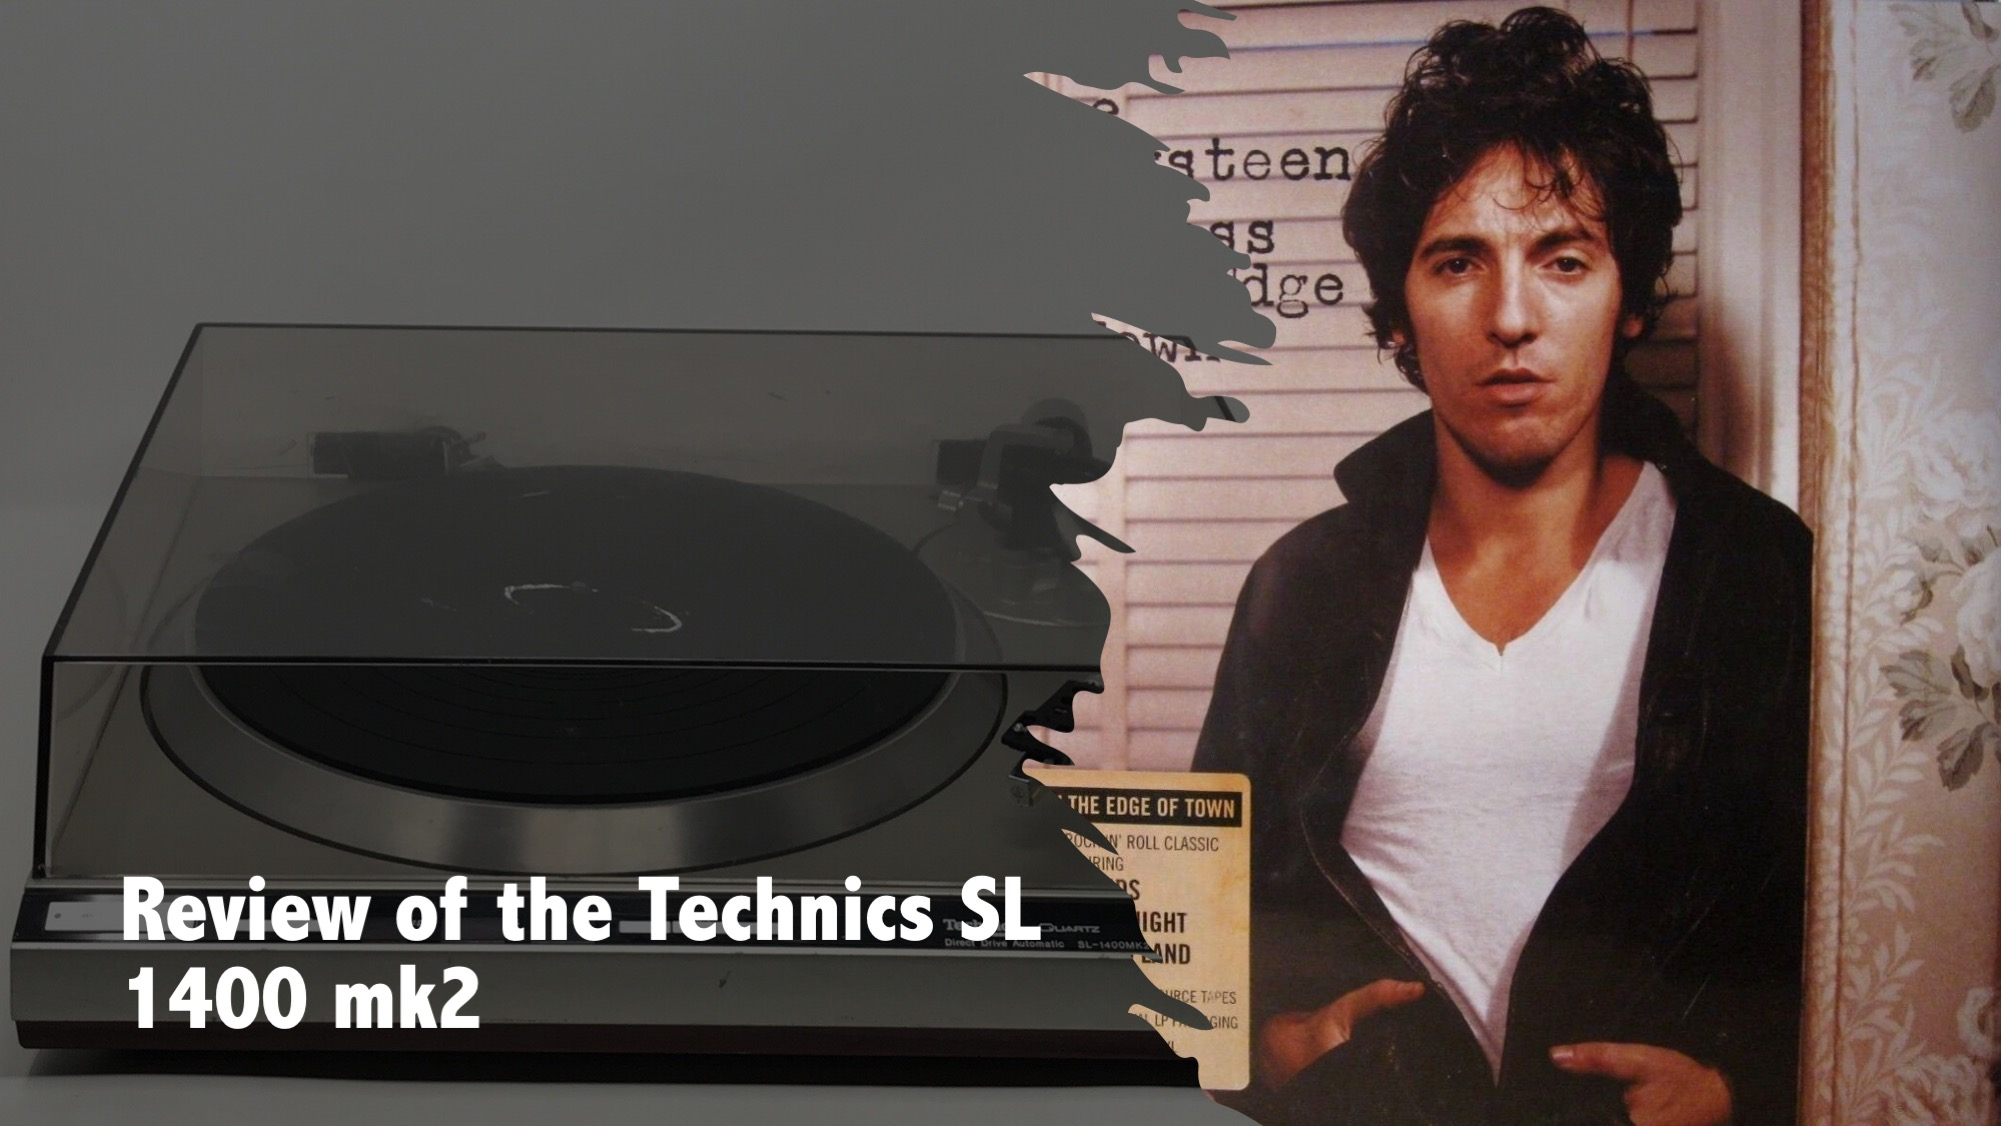 Review of the Technics SL 1400 mk2